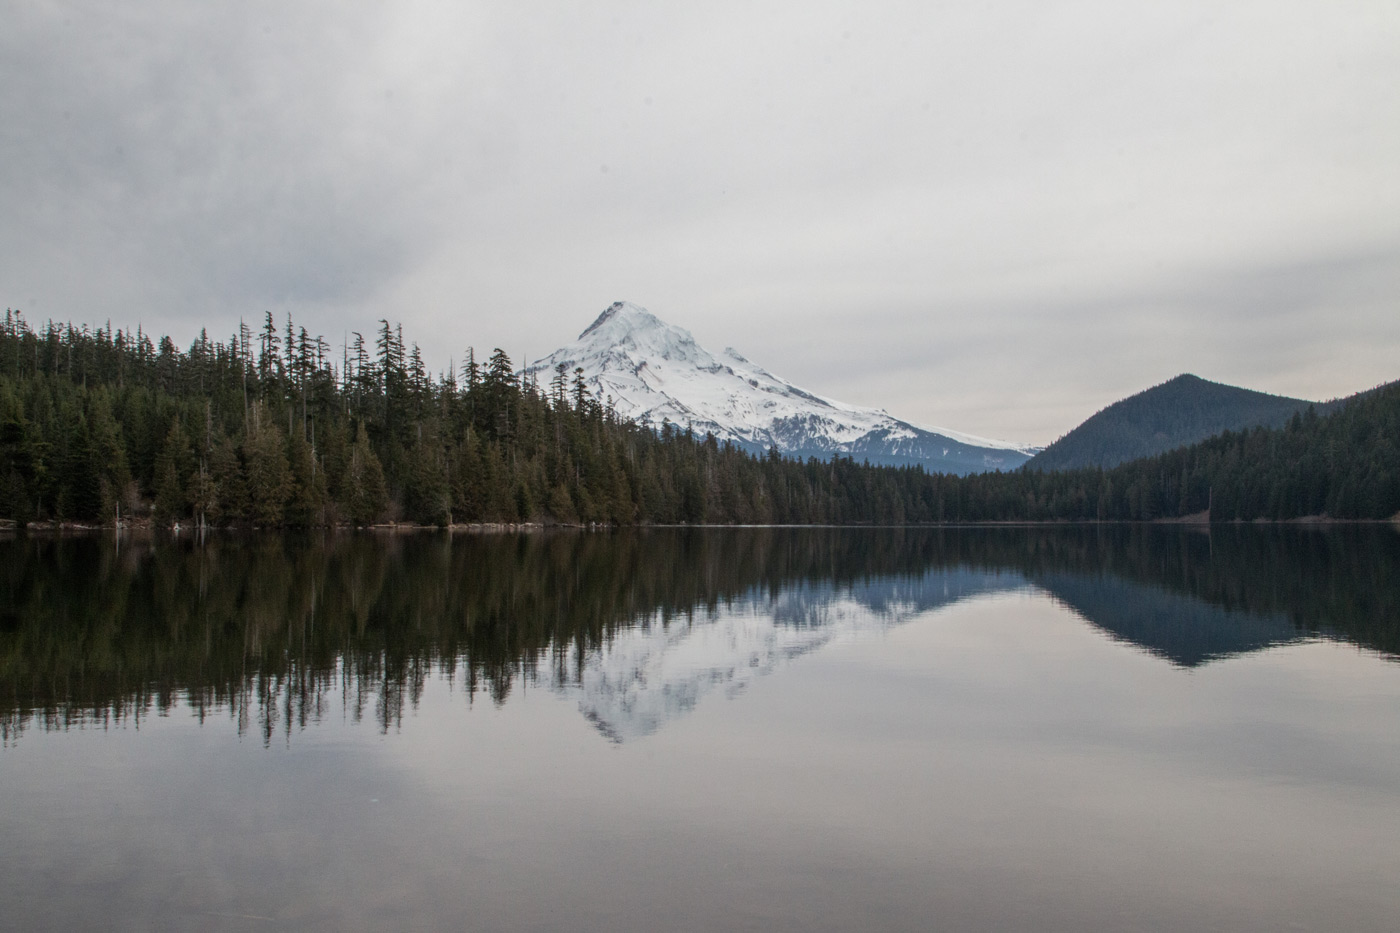 Lost Lake - Snow capped mountain reflections